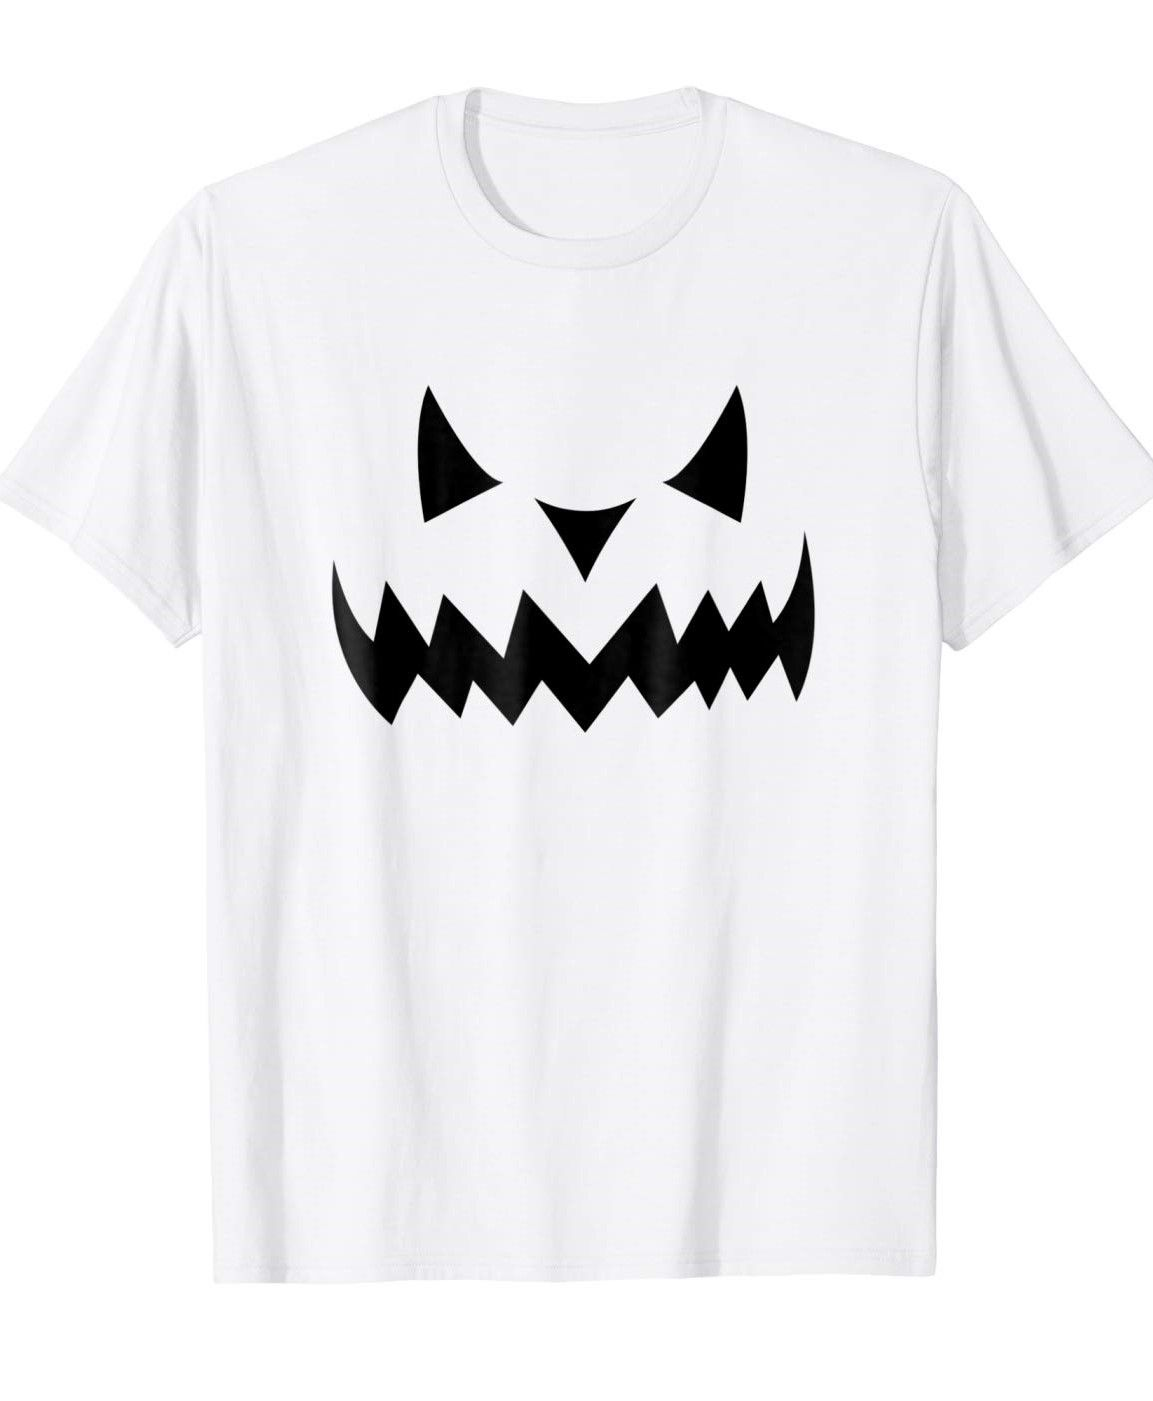 Scary Halloween Costume Ghost Face TShirt apparel